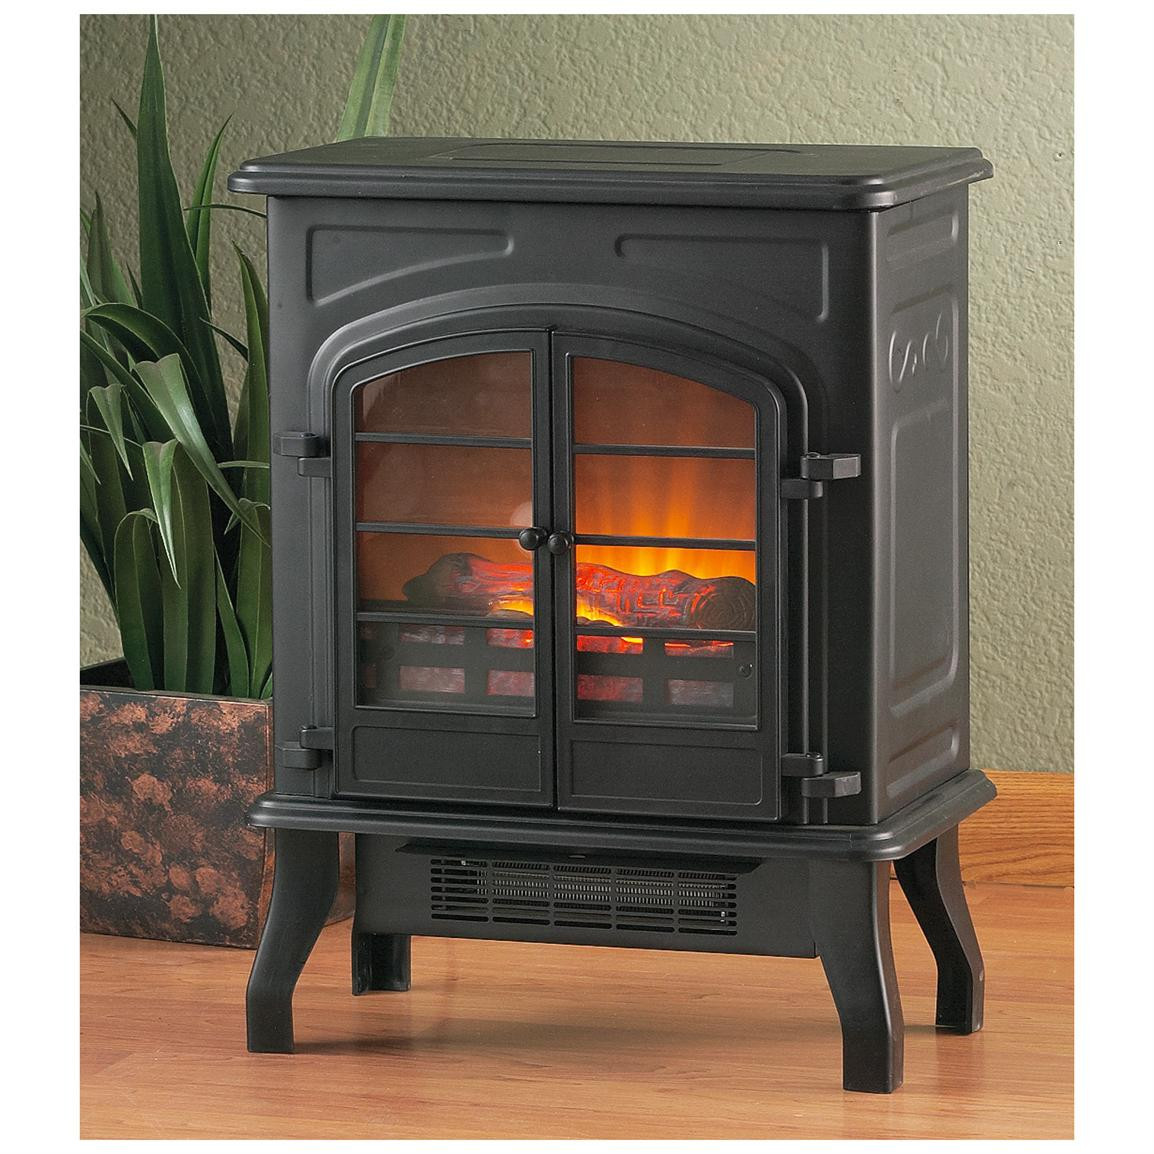 Best ideas about Fireplace Electric Heater . Save or Pin CASTLECREEK™ Electric Stove Heater Fireplaces at Now.